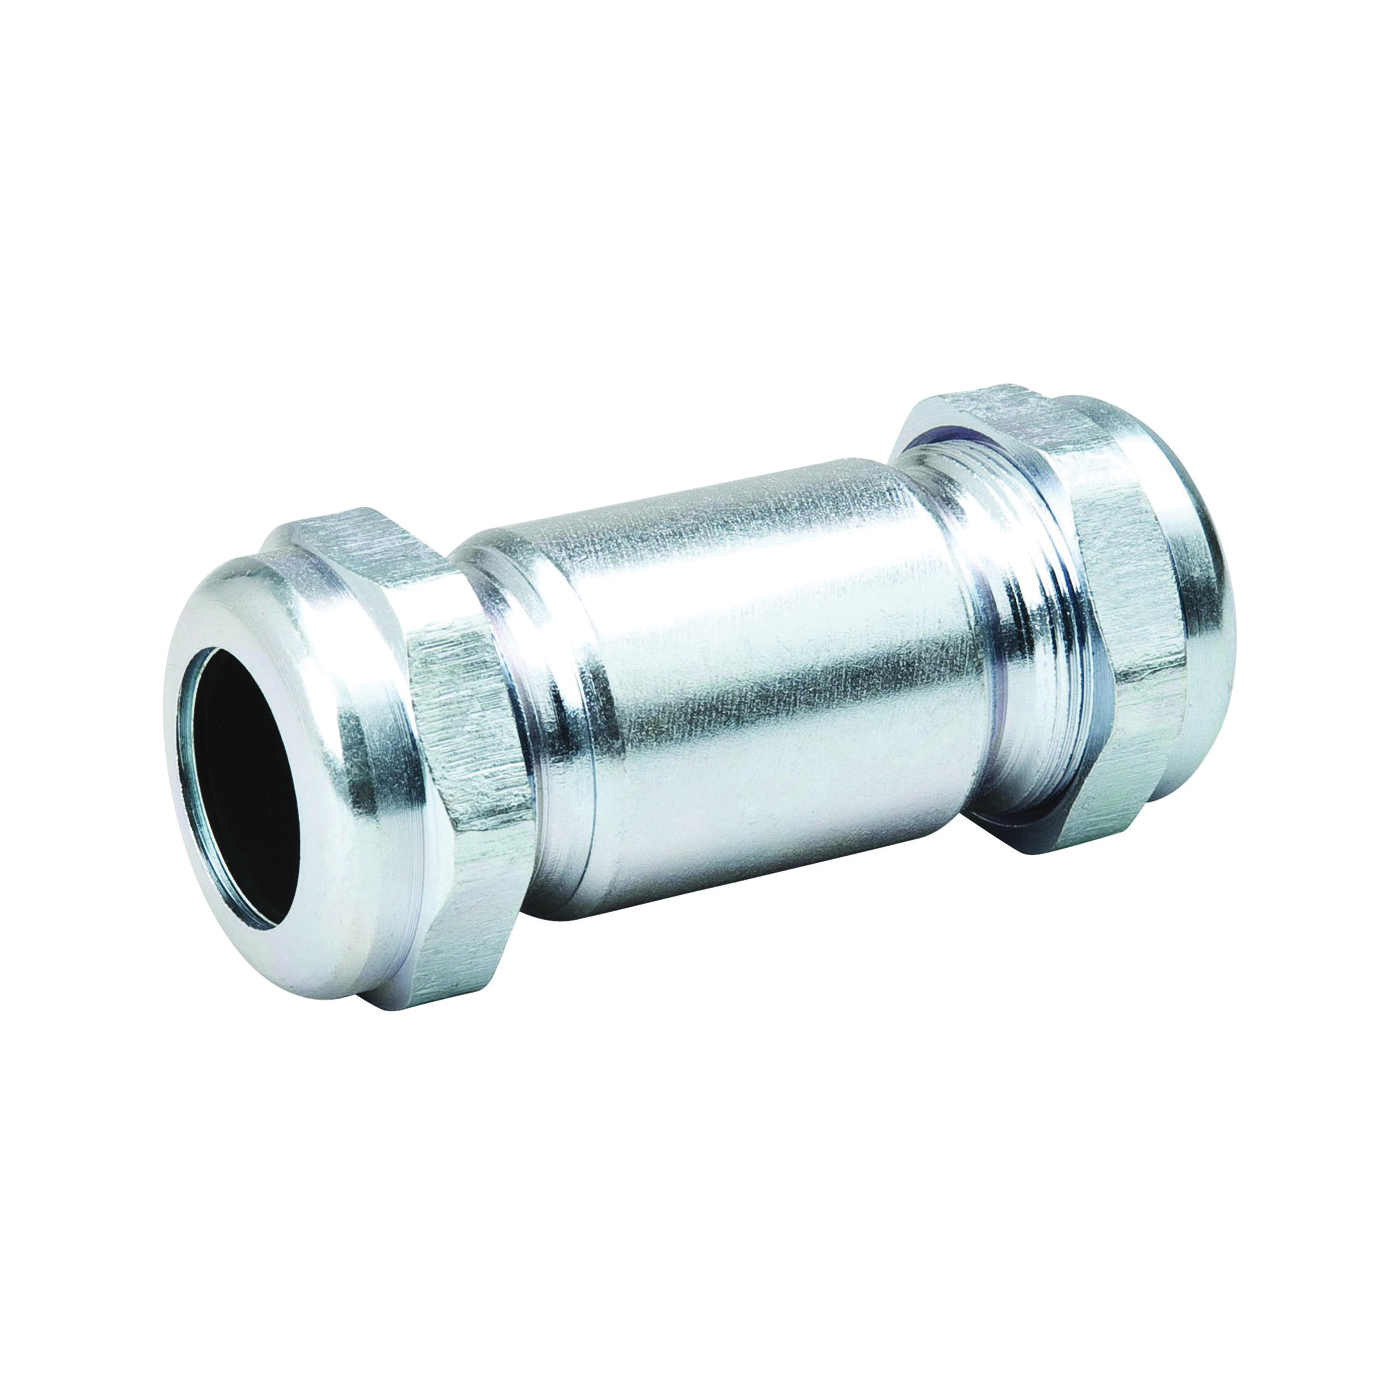 Picture of B & K 160-008HC Compression Coupling, 2 in, IPS, 125 psi Pressure